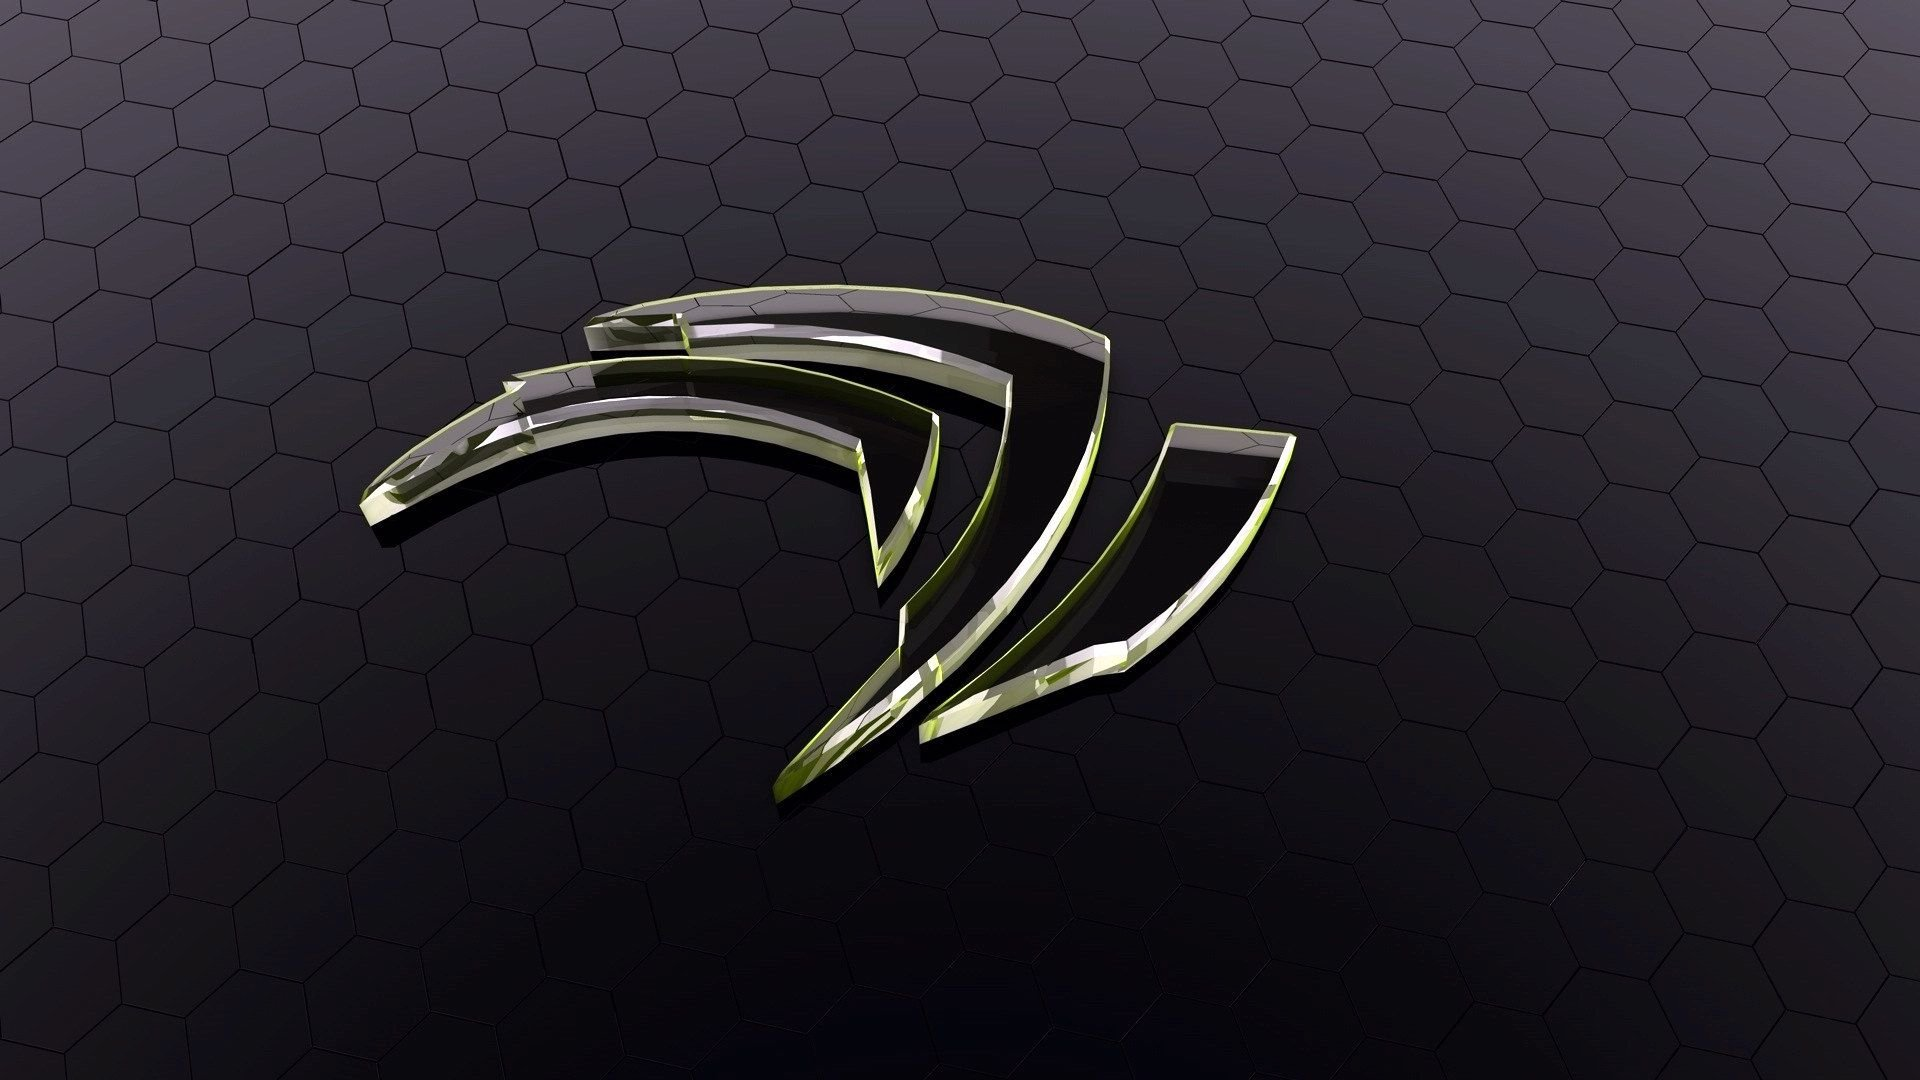 nvidia wallpaper 1920x1080 hd - wallpapersafari